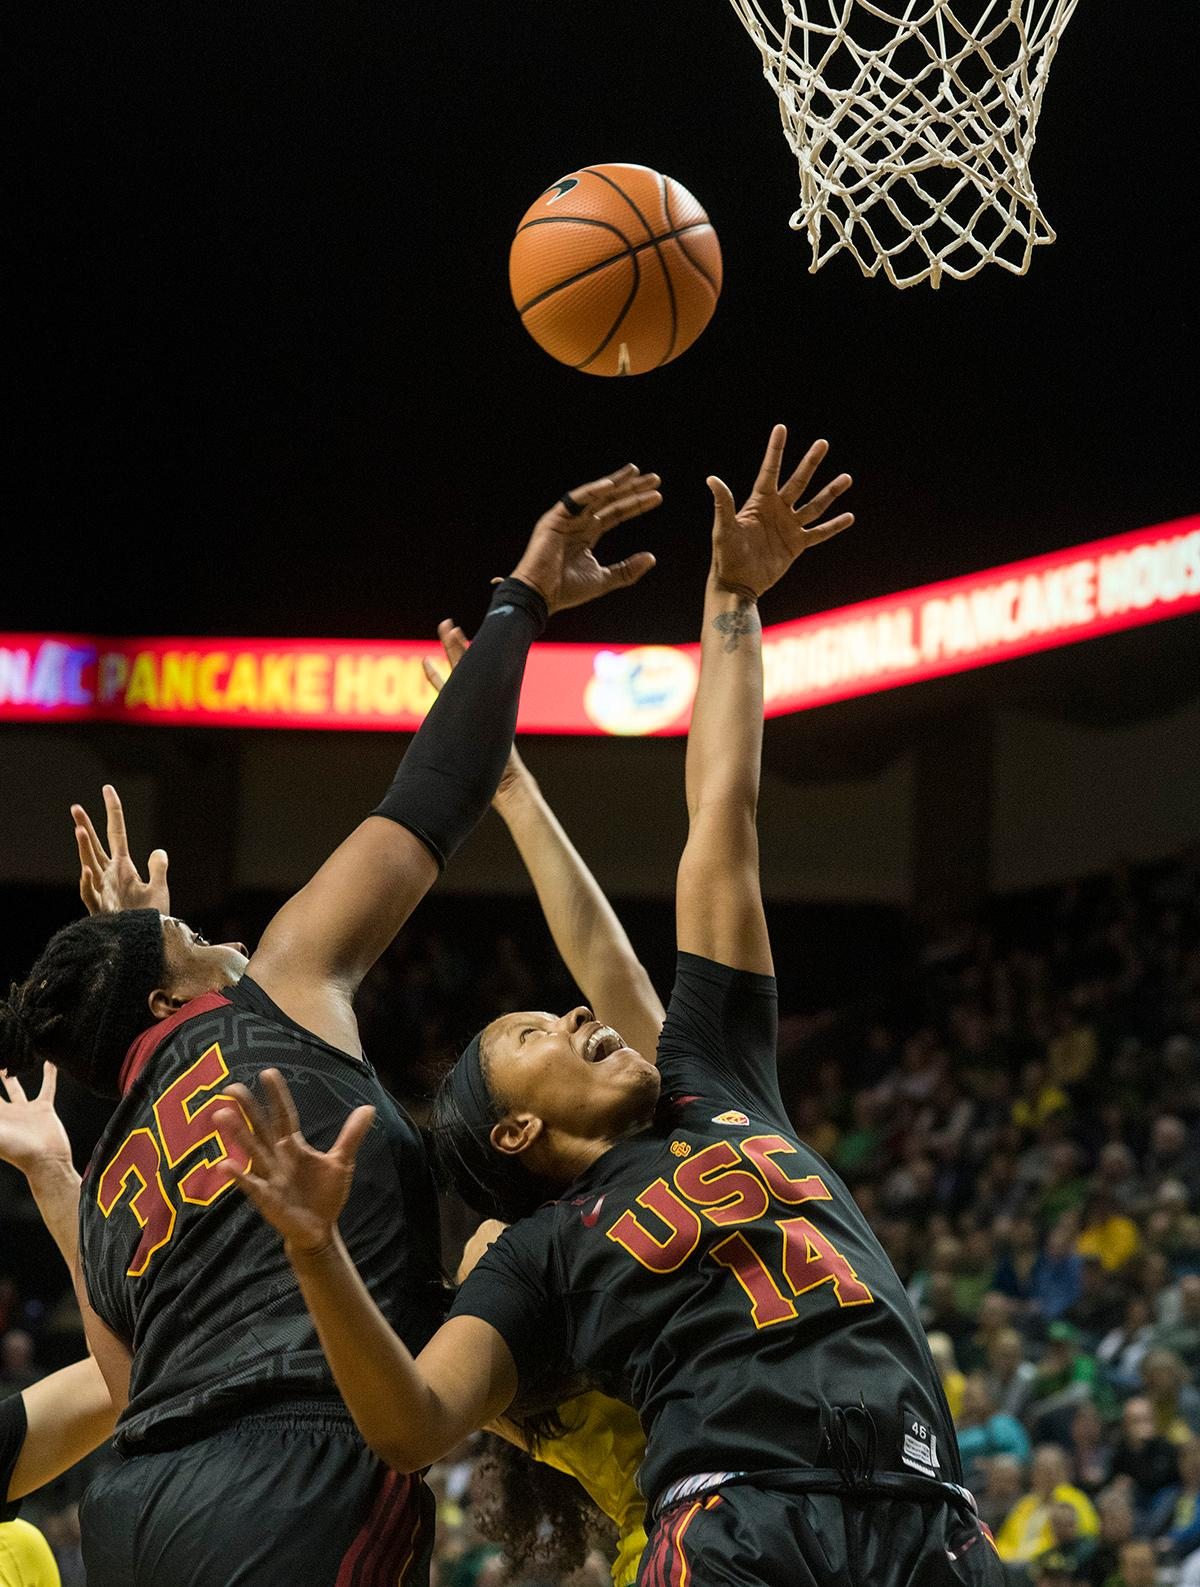 USC Trojans Kristen Simon (#35) and Sadie Edwards (#14) attempt to get the rebound. The Oregon Ducks defeated the USC Trojans 80-74 on Friday at Matthew Knight Arena in a game that went into double overtime. Lexi Bando sealed the Ducks' victory by scoring a three-pointer in the closing of the game. Ruthy Hebard set a new NCAA record of 30 consecutive field goals in three straight games, the old record being 28. Ruthy Hebard got a double-double with 27 points and 10 rebounds, Mallory McGwire also had 10 rebounds. The Ducks had four players in double digits. The Ducks are now 24-4, 13-2 in the Pac-12, and are tied for first with Stanford. Photo By Rhianna Gelhart, Oregon News Lab